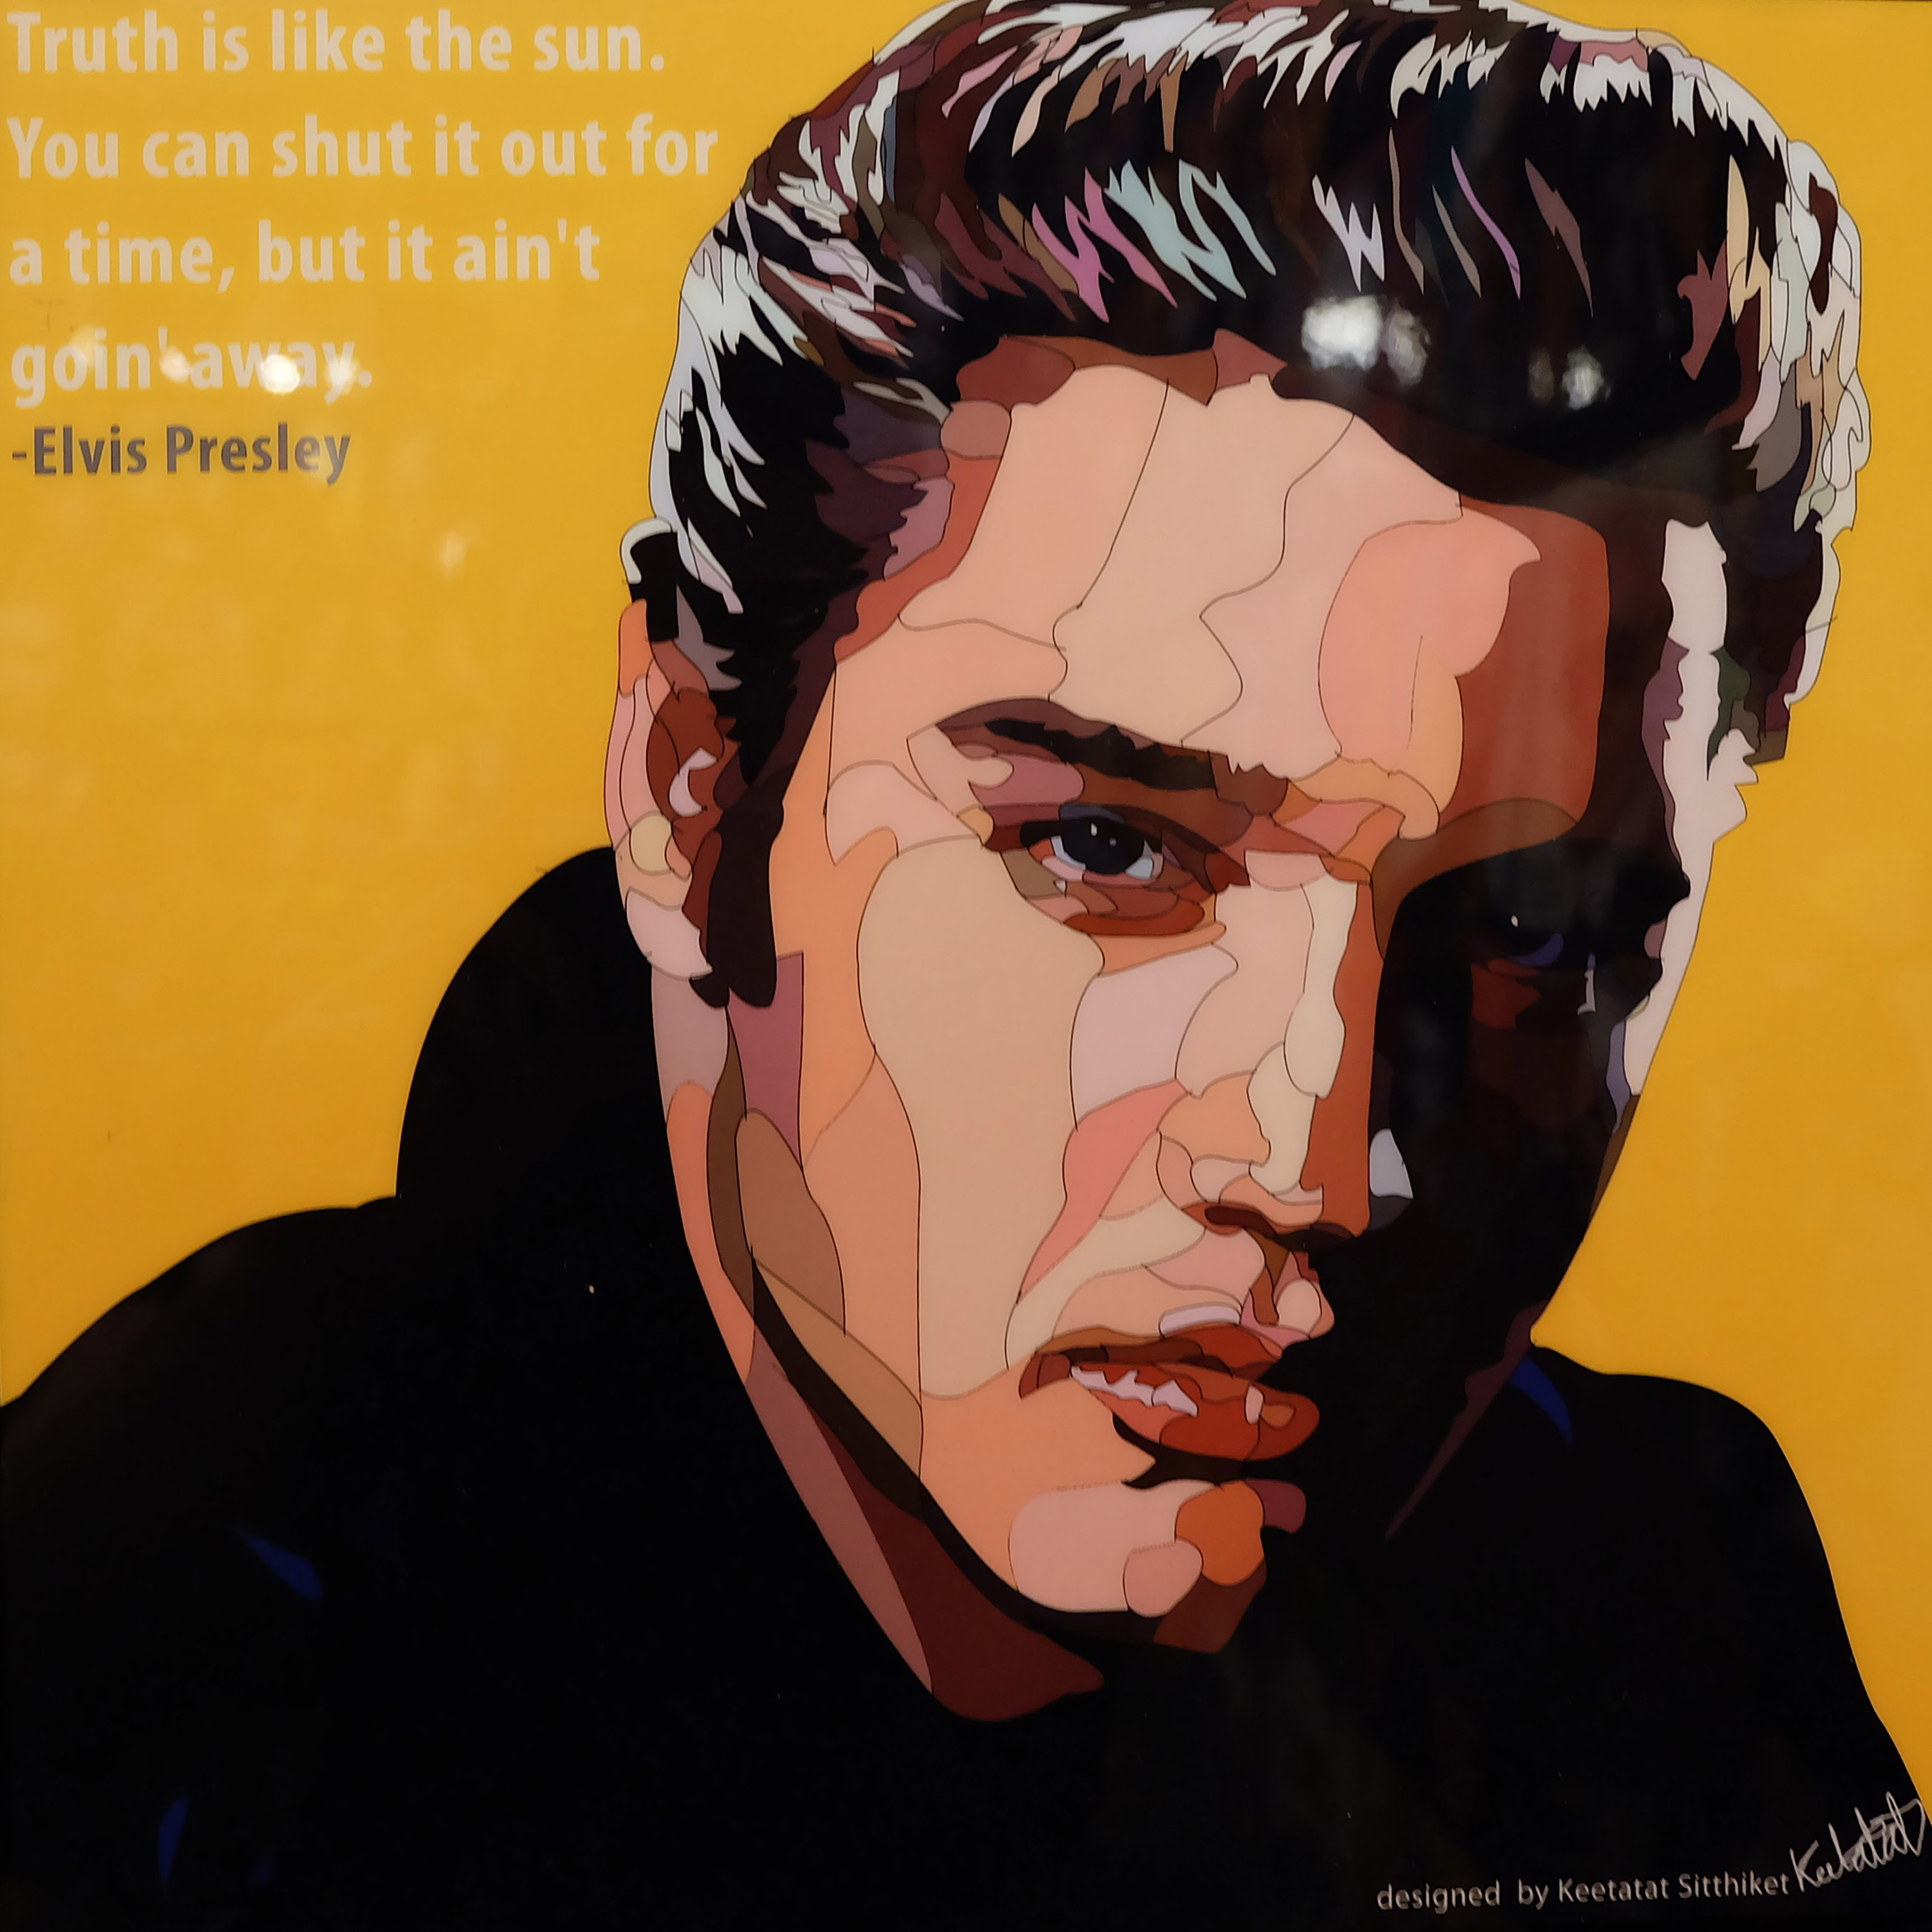 Elvis Presley Poster Truth Is Like The Sun